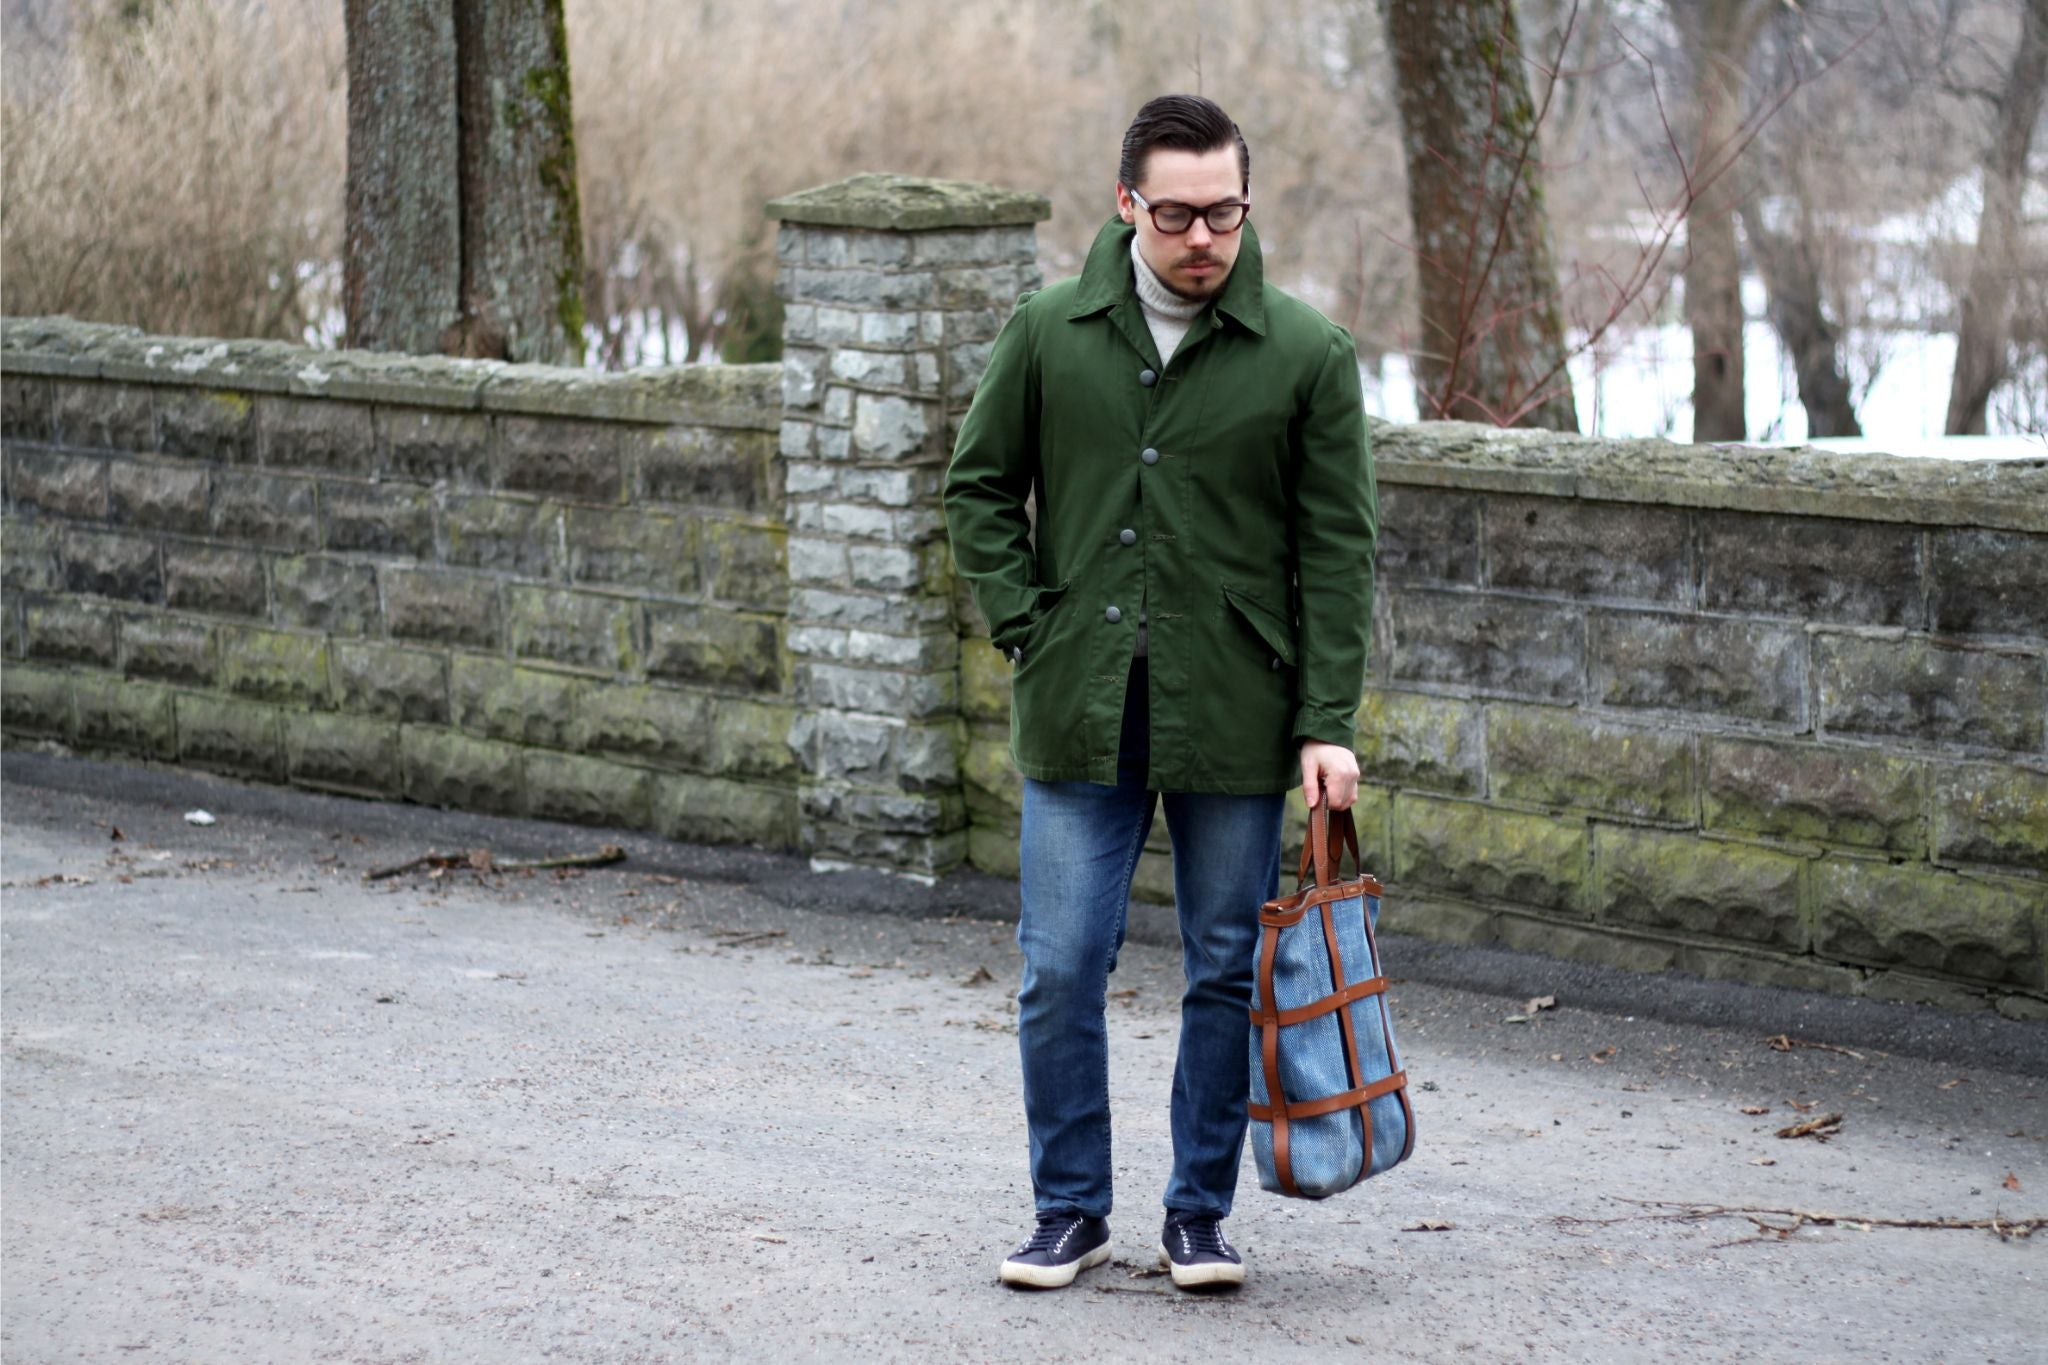 M59 field jacket - How to wear it with denim and sneakers